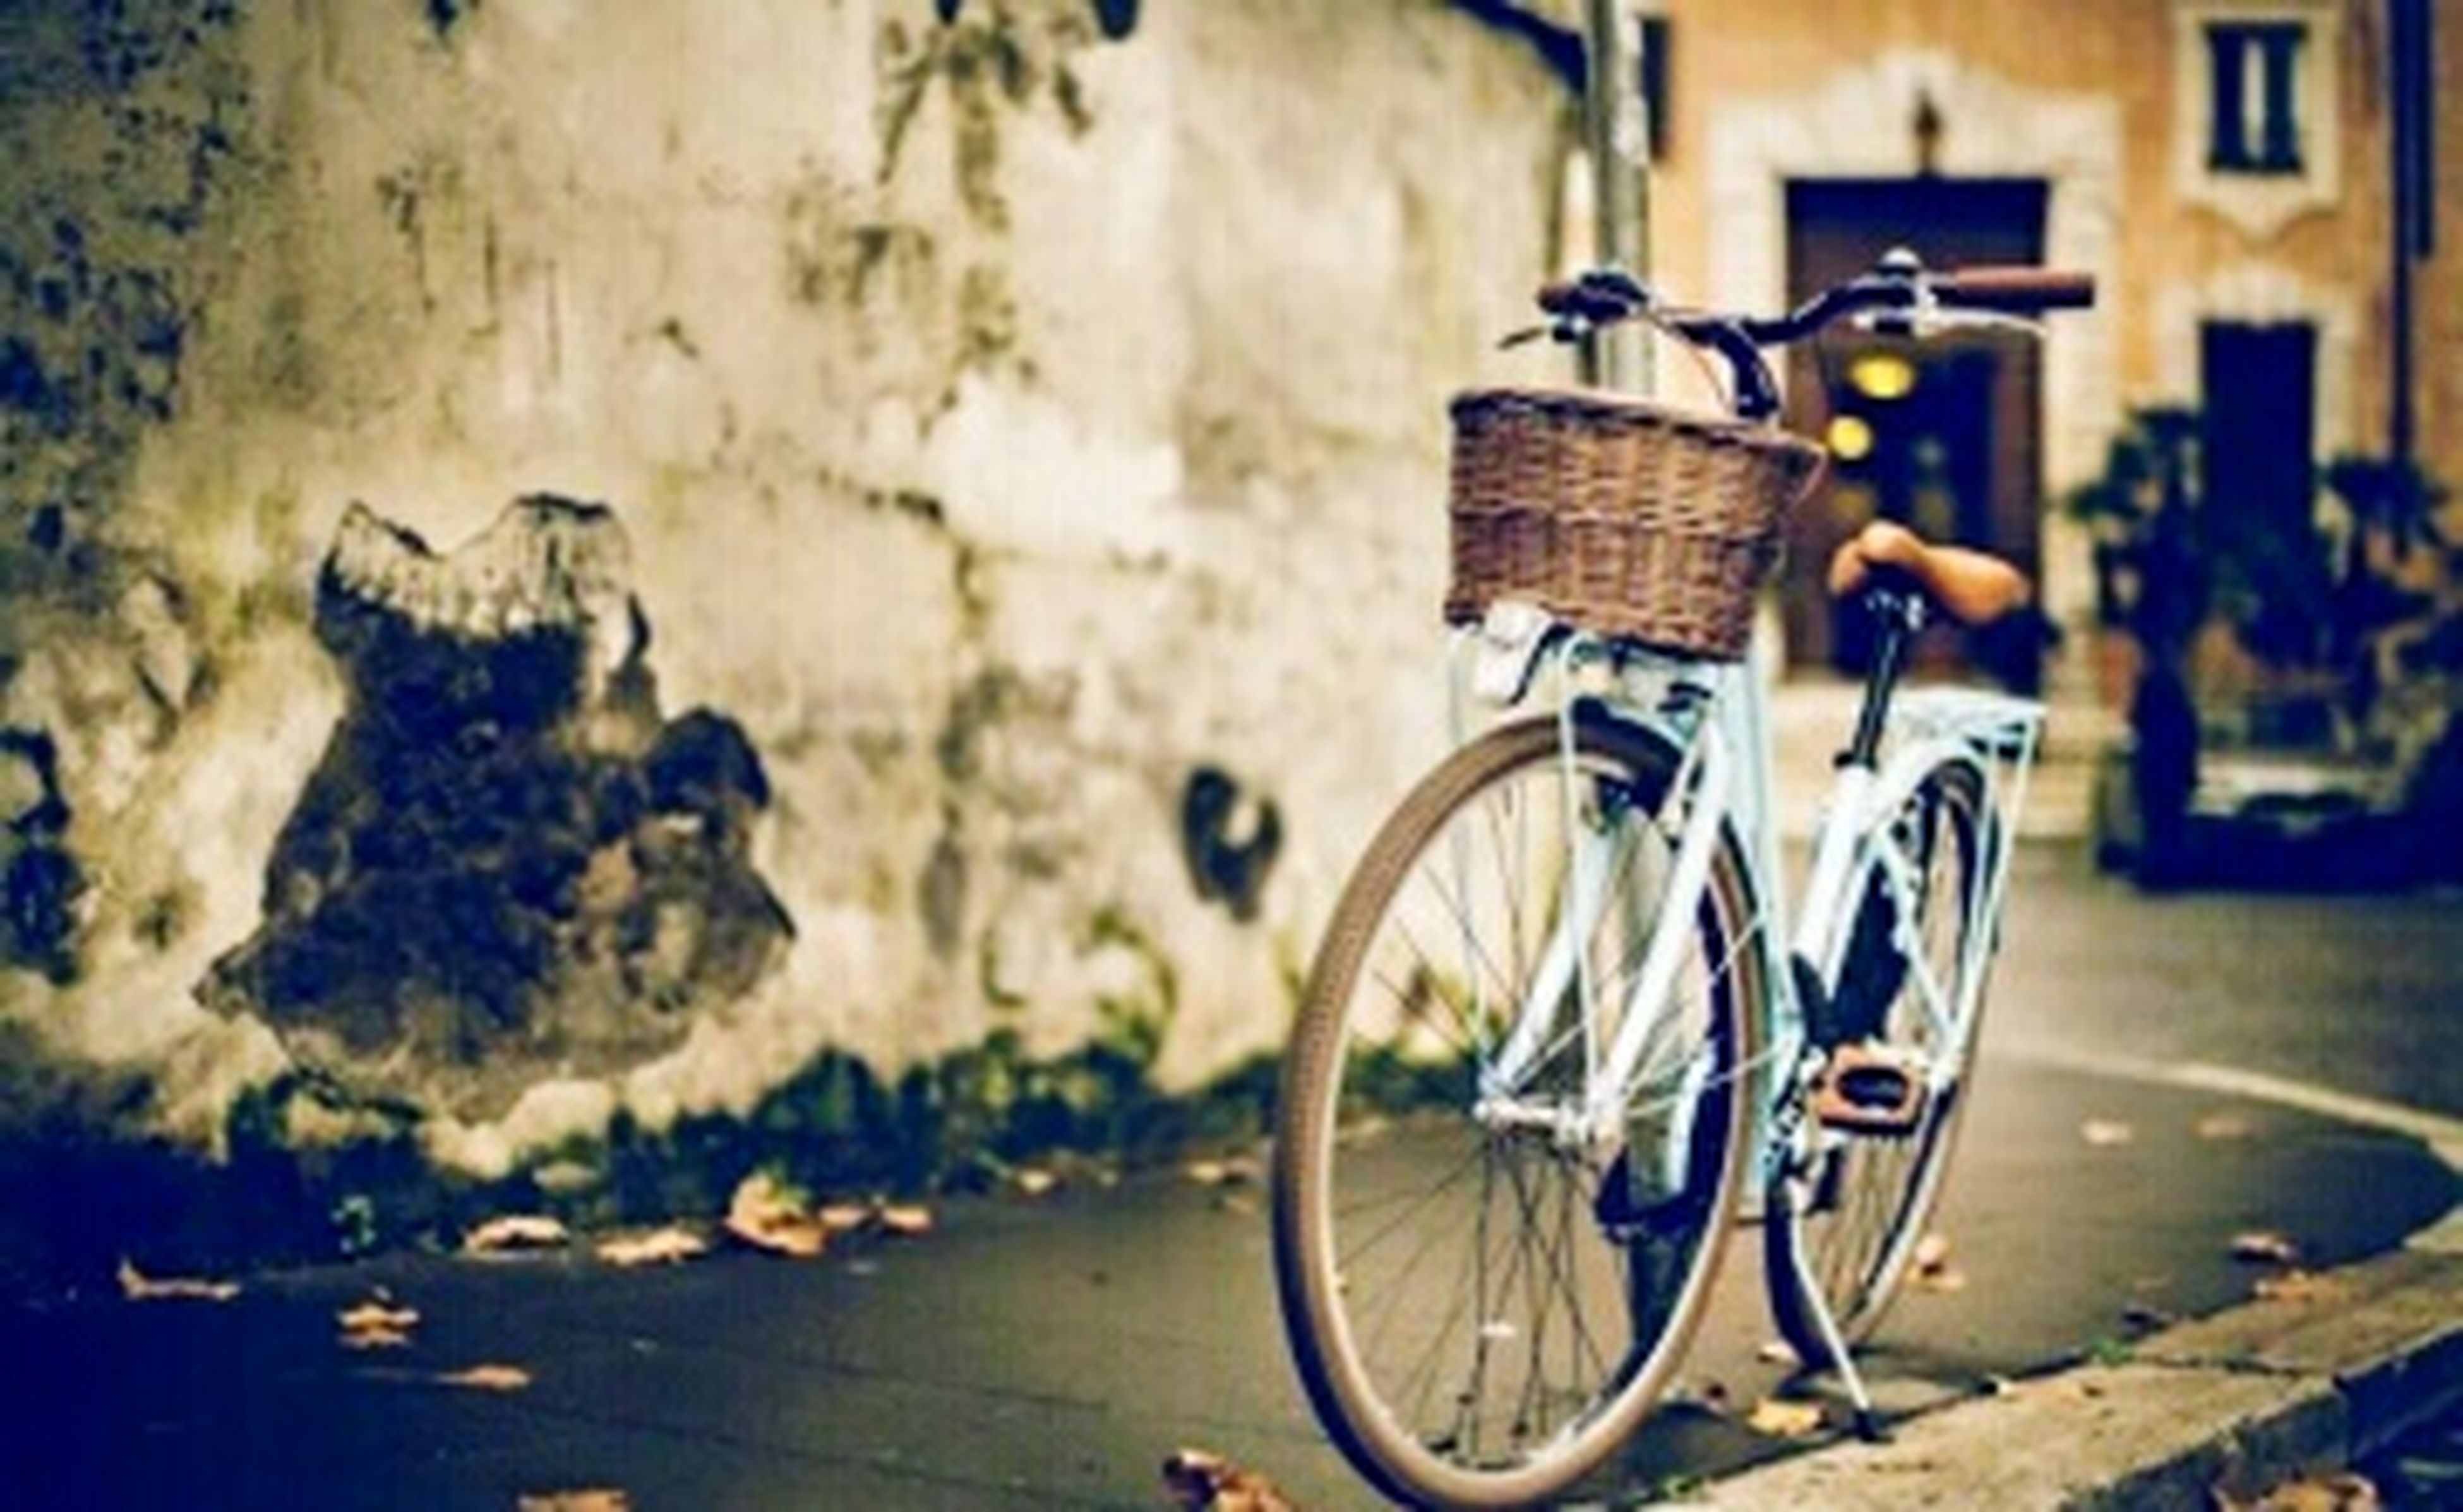 bicycle, mode of transport, transportation, land vehicle, stationary, parked, parking, street, side view, building exterior, built structure, wall - building feature, outdoors, architecture, day, cycle, no people, leaning, sidewalk, travel